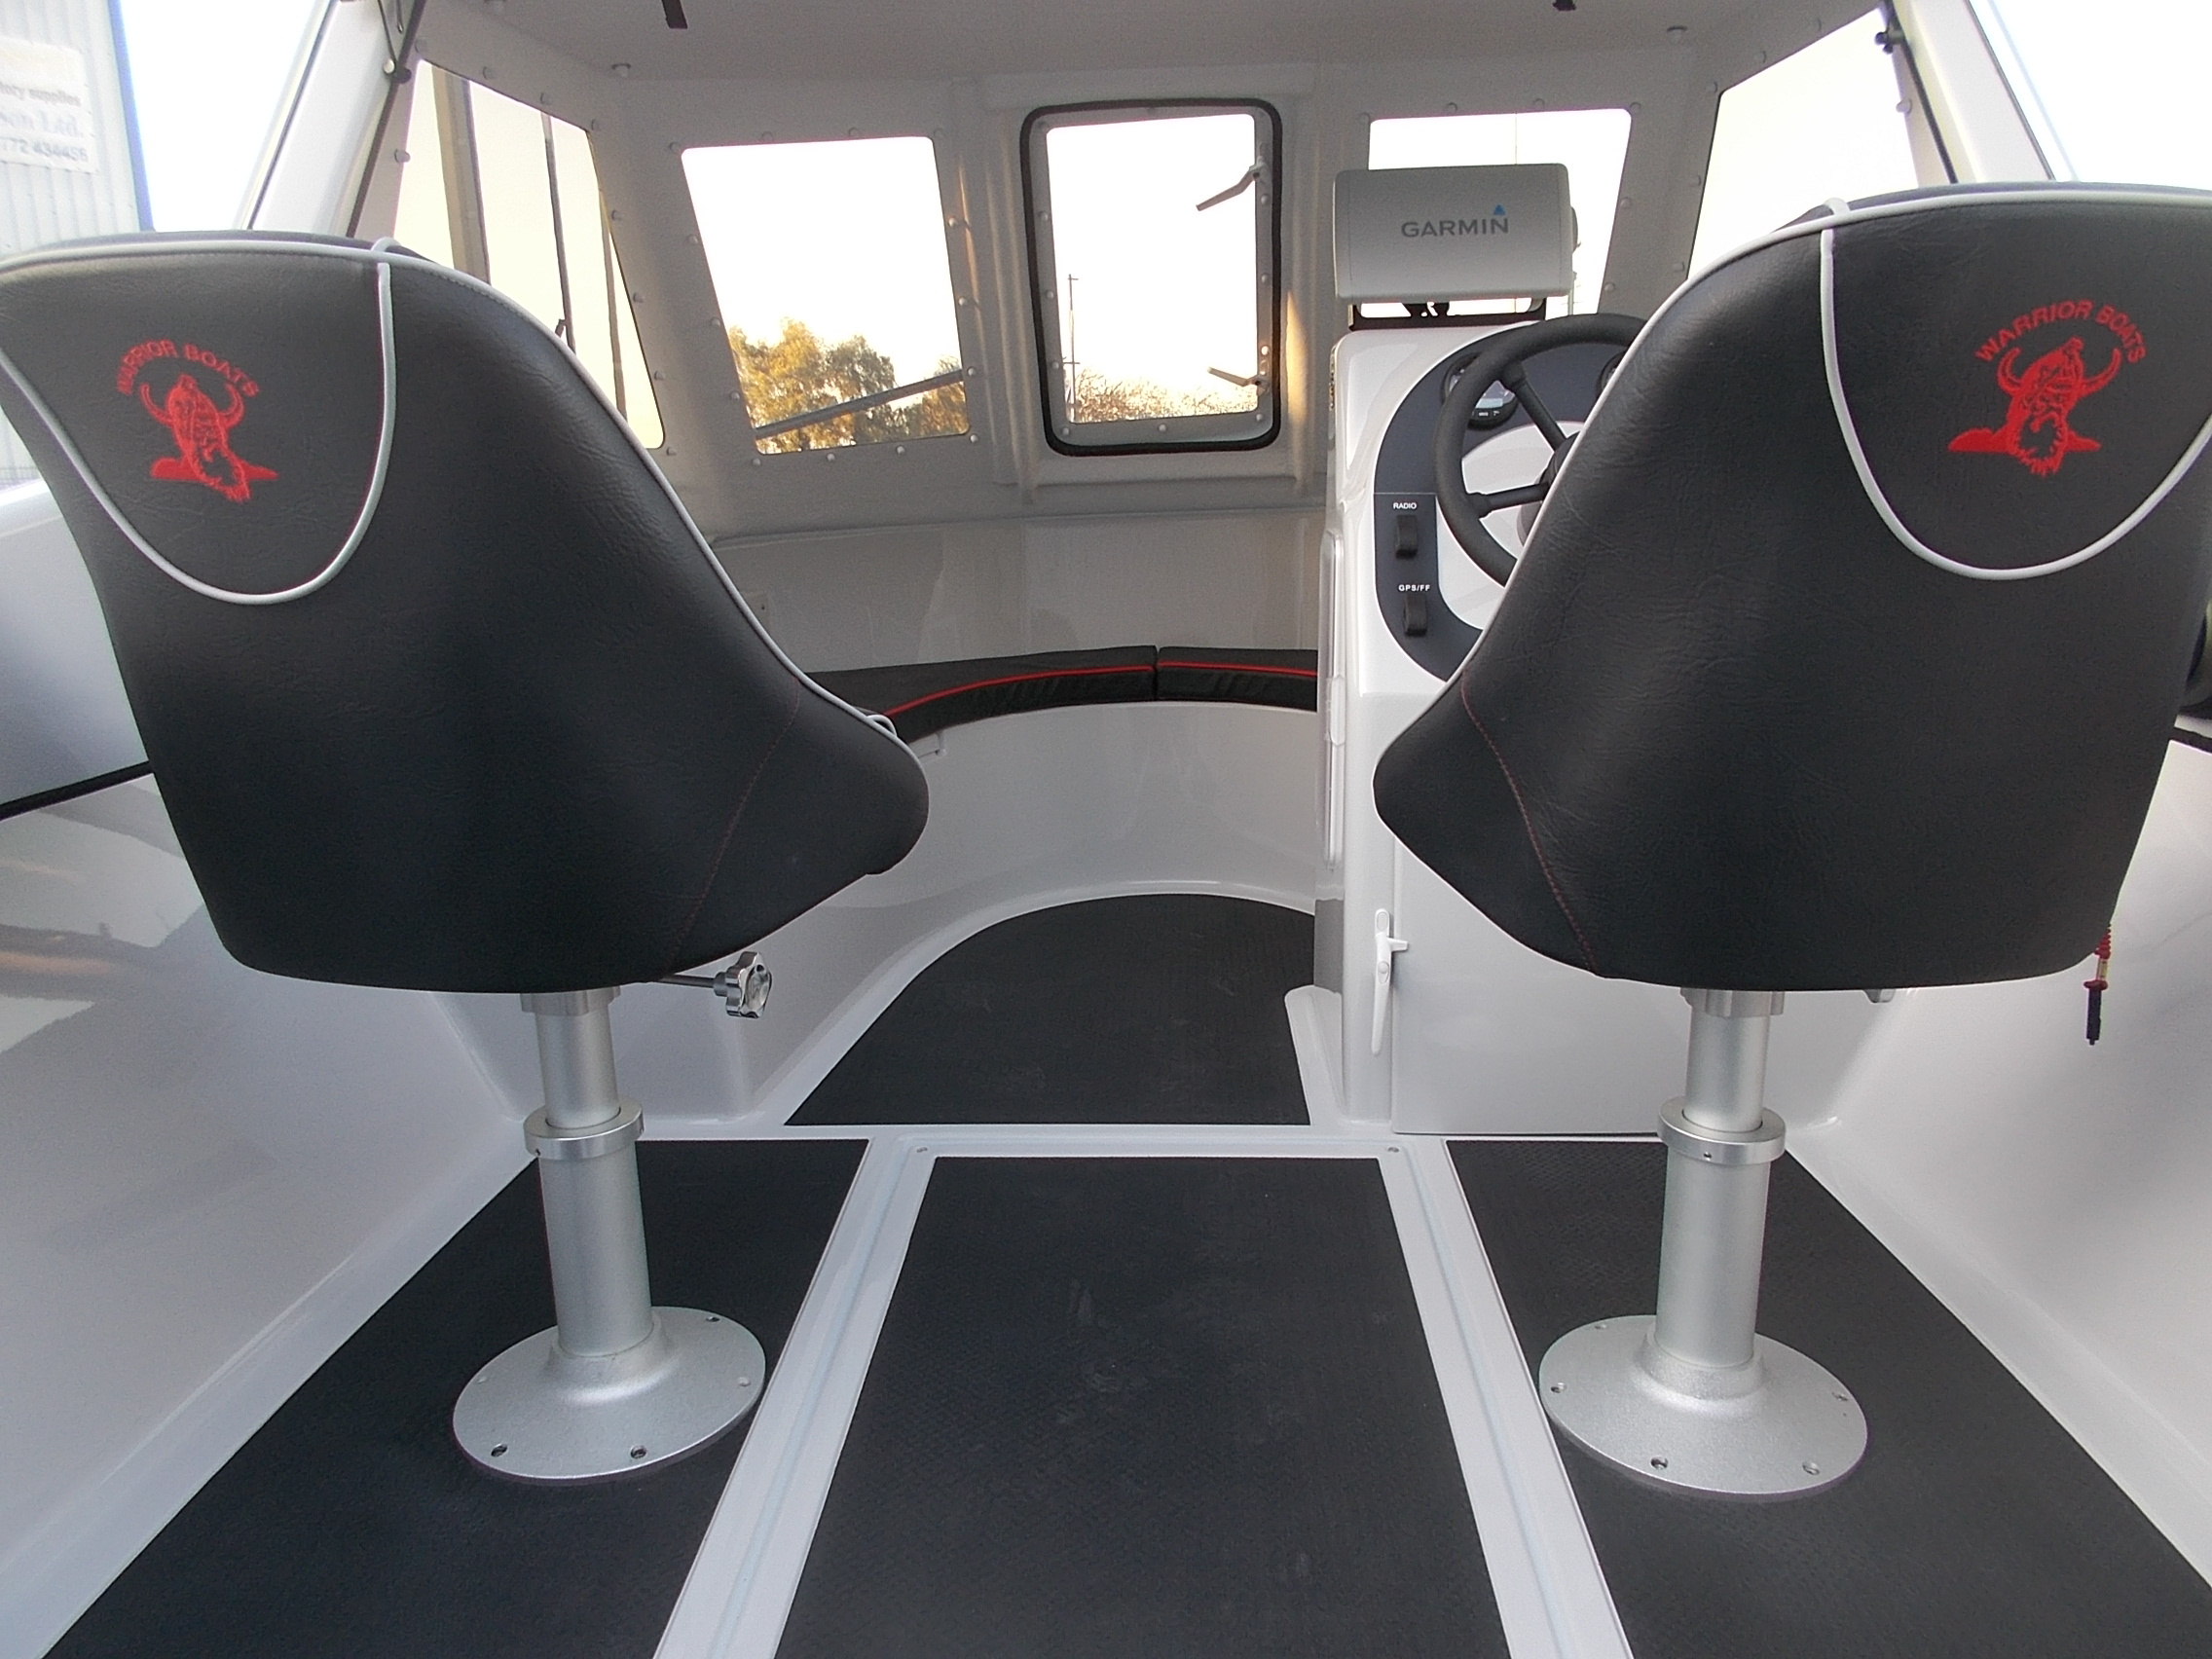 Warrior 175 Bucket Seats on Pedestals